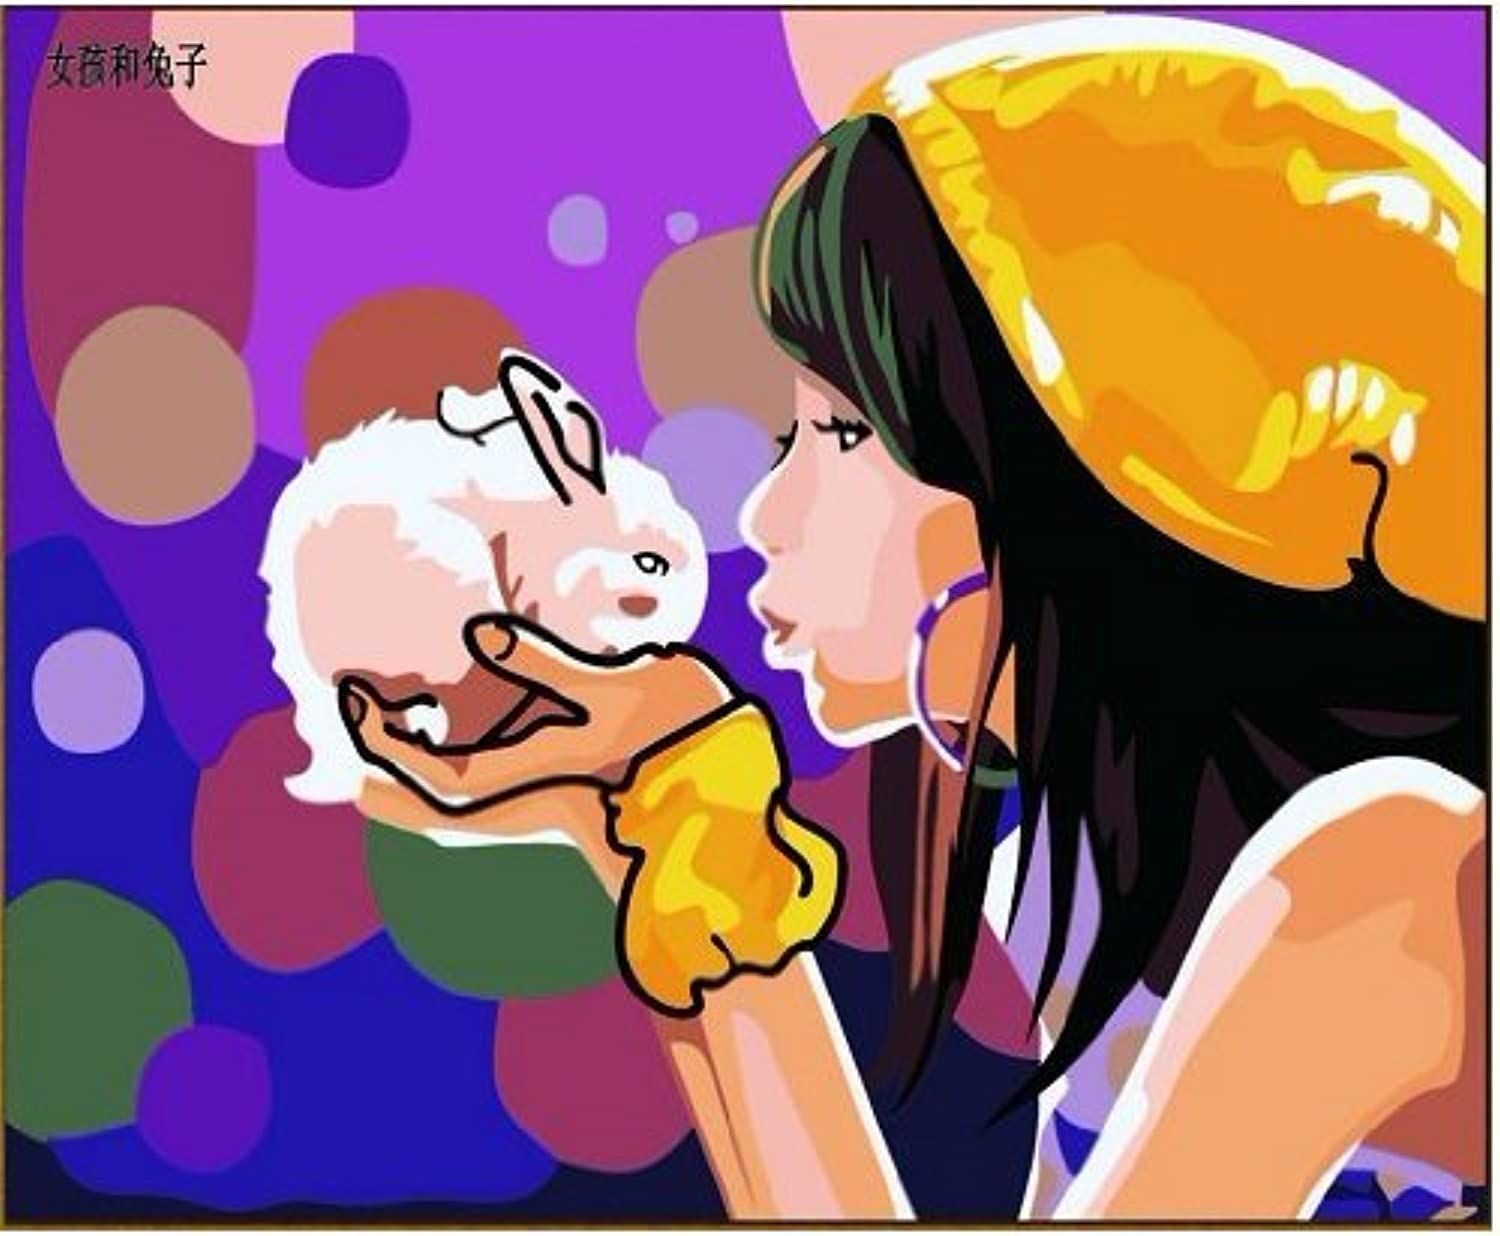 Diy oil painting, paint by number kit Girl and rabbit 1620 inch. by Colour Talk